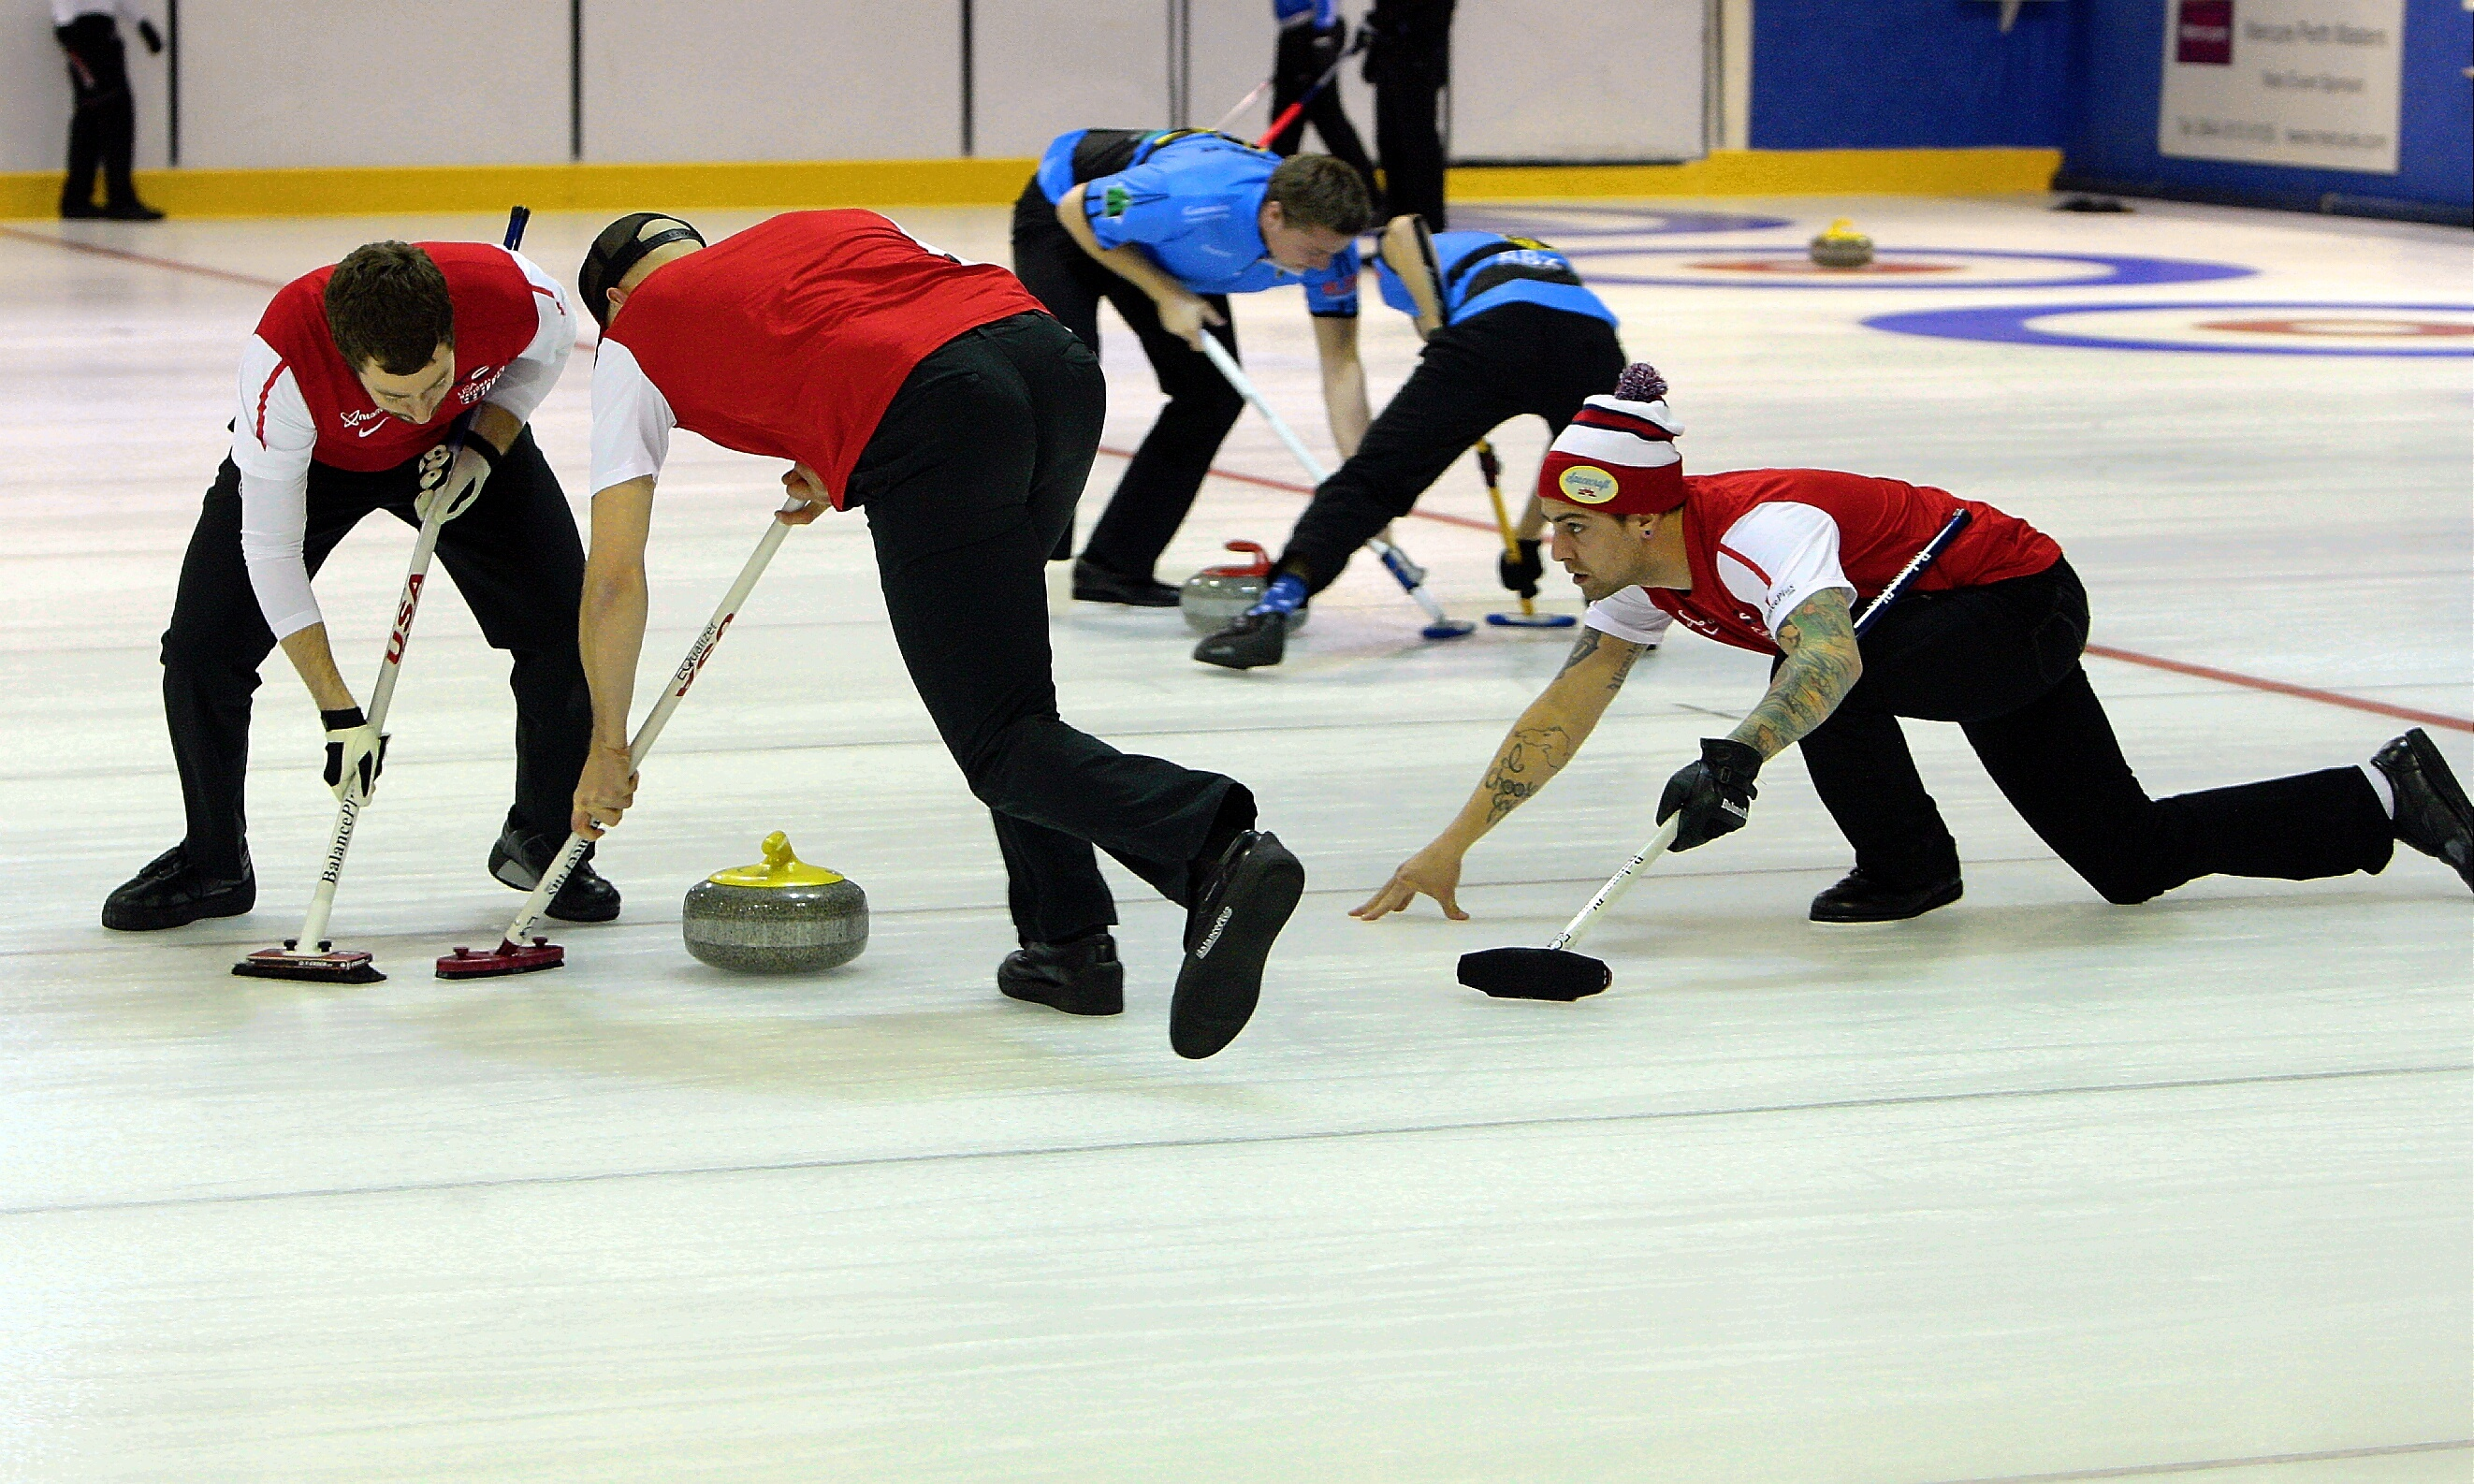 Curling action from a previous Mercure City of Perth Masters.